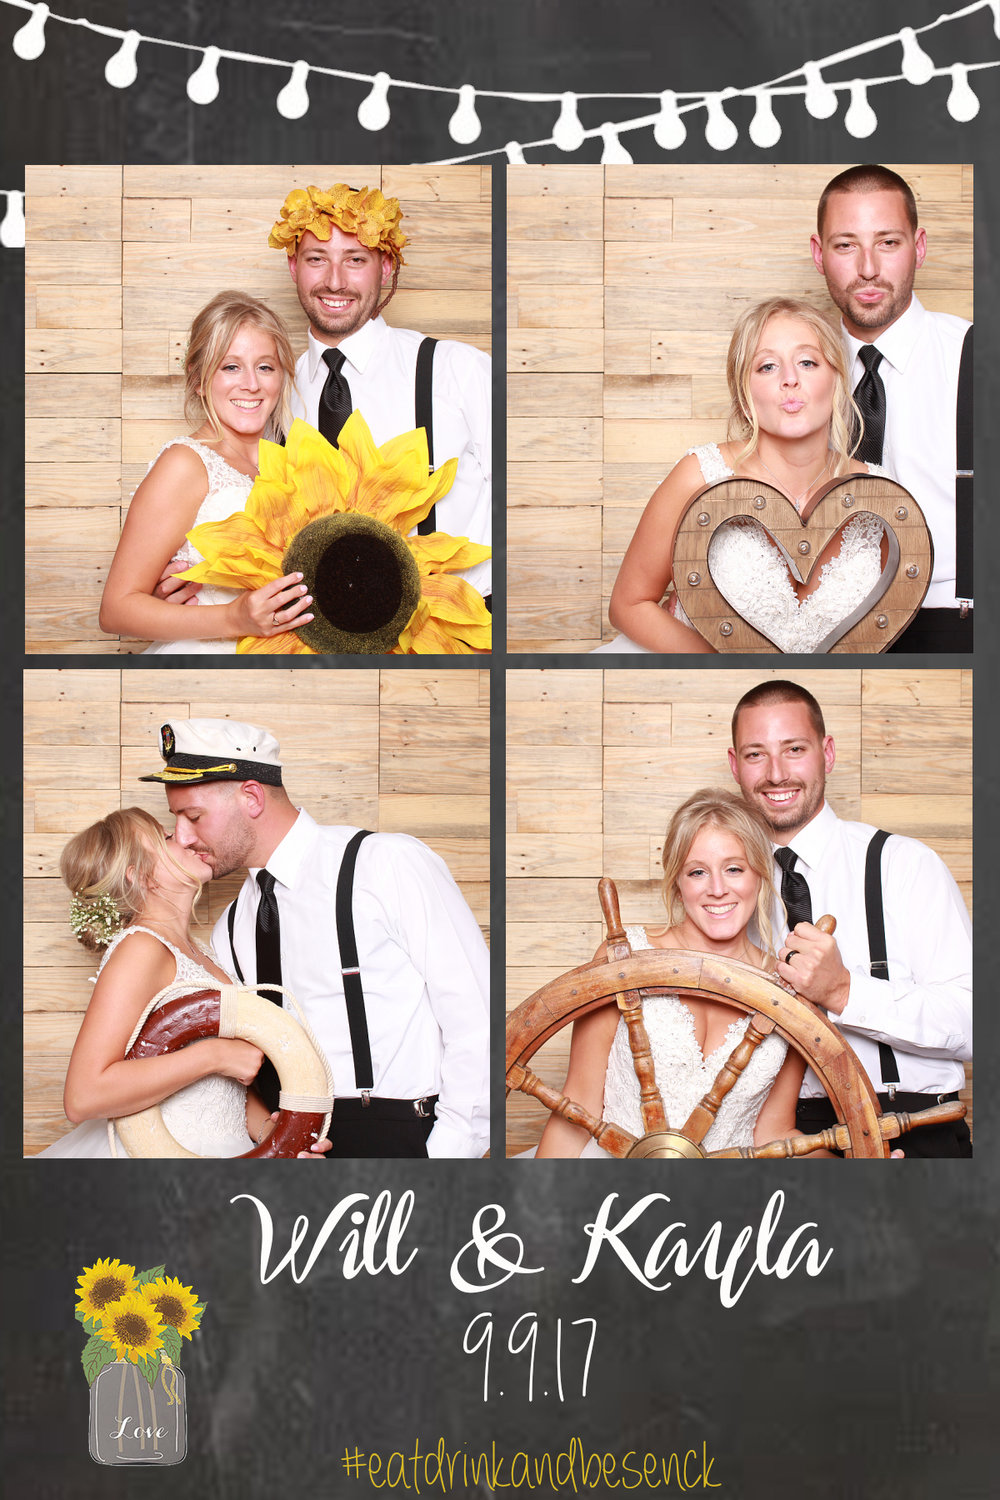 Kayla and Will September 9th, 2017